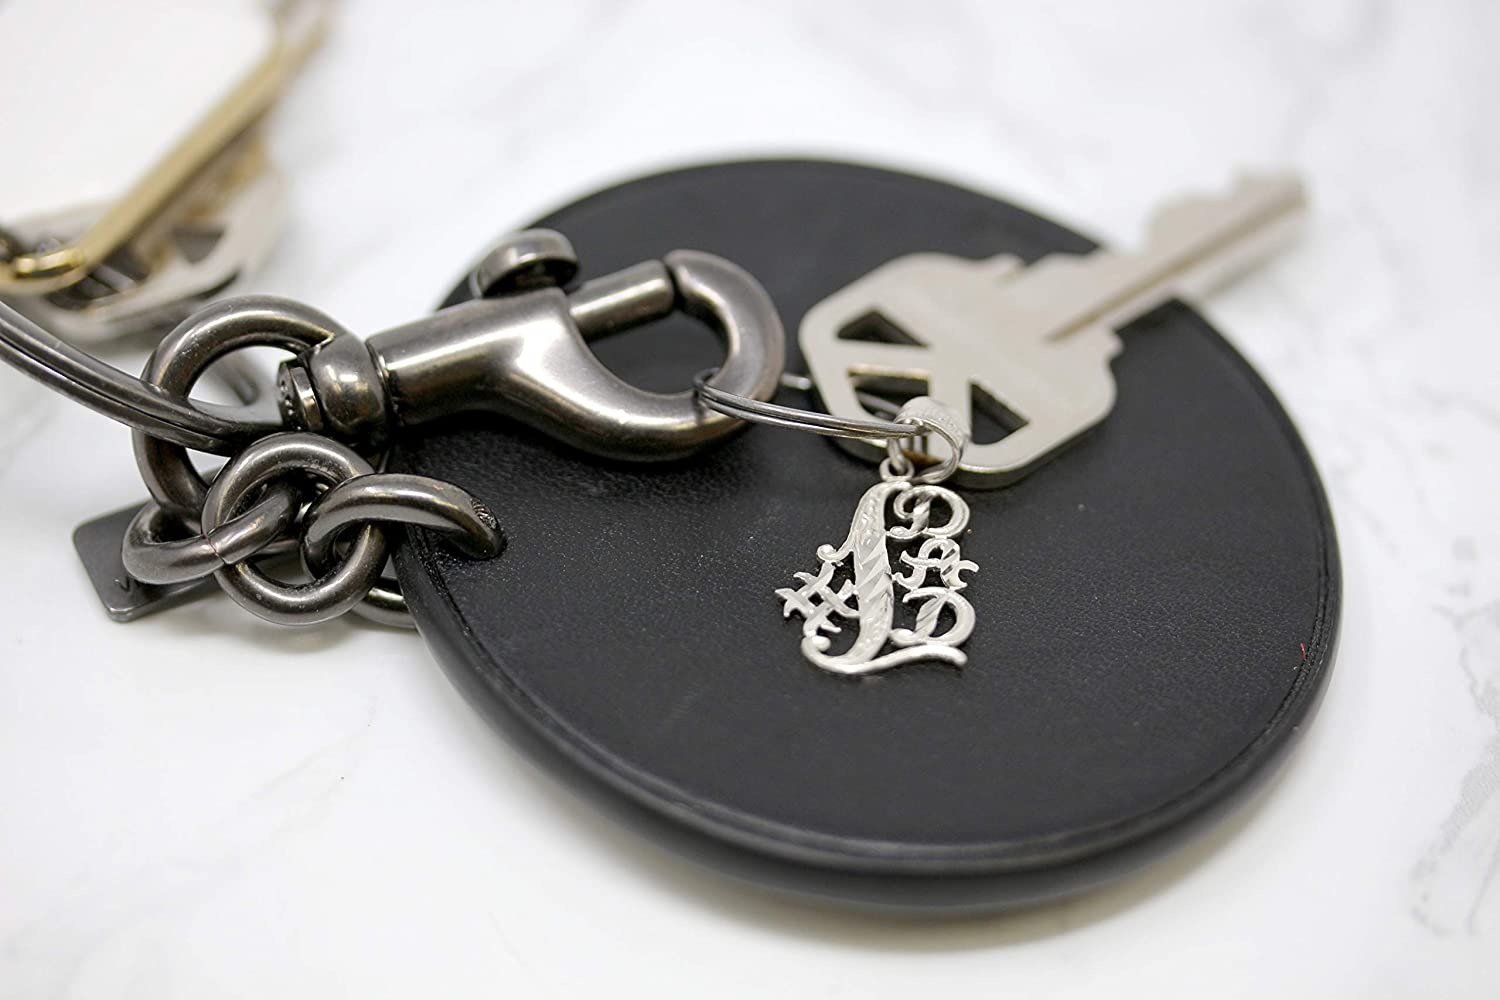 CaliRoseJewelry 10k #1 Dad Best Dad Handmade Keychain Charm Pendant Necklace for Father